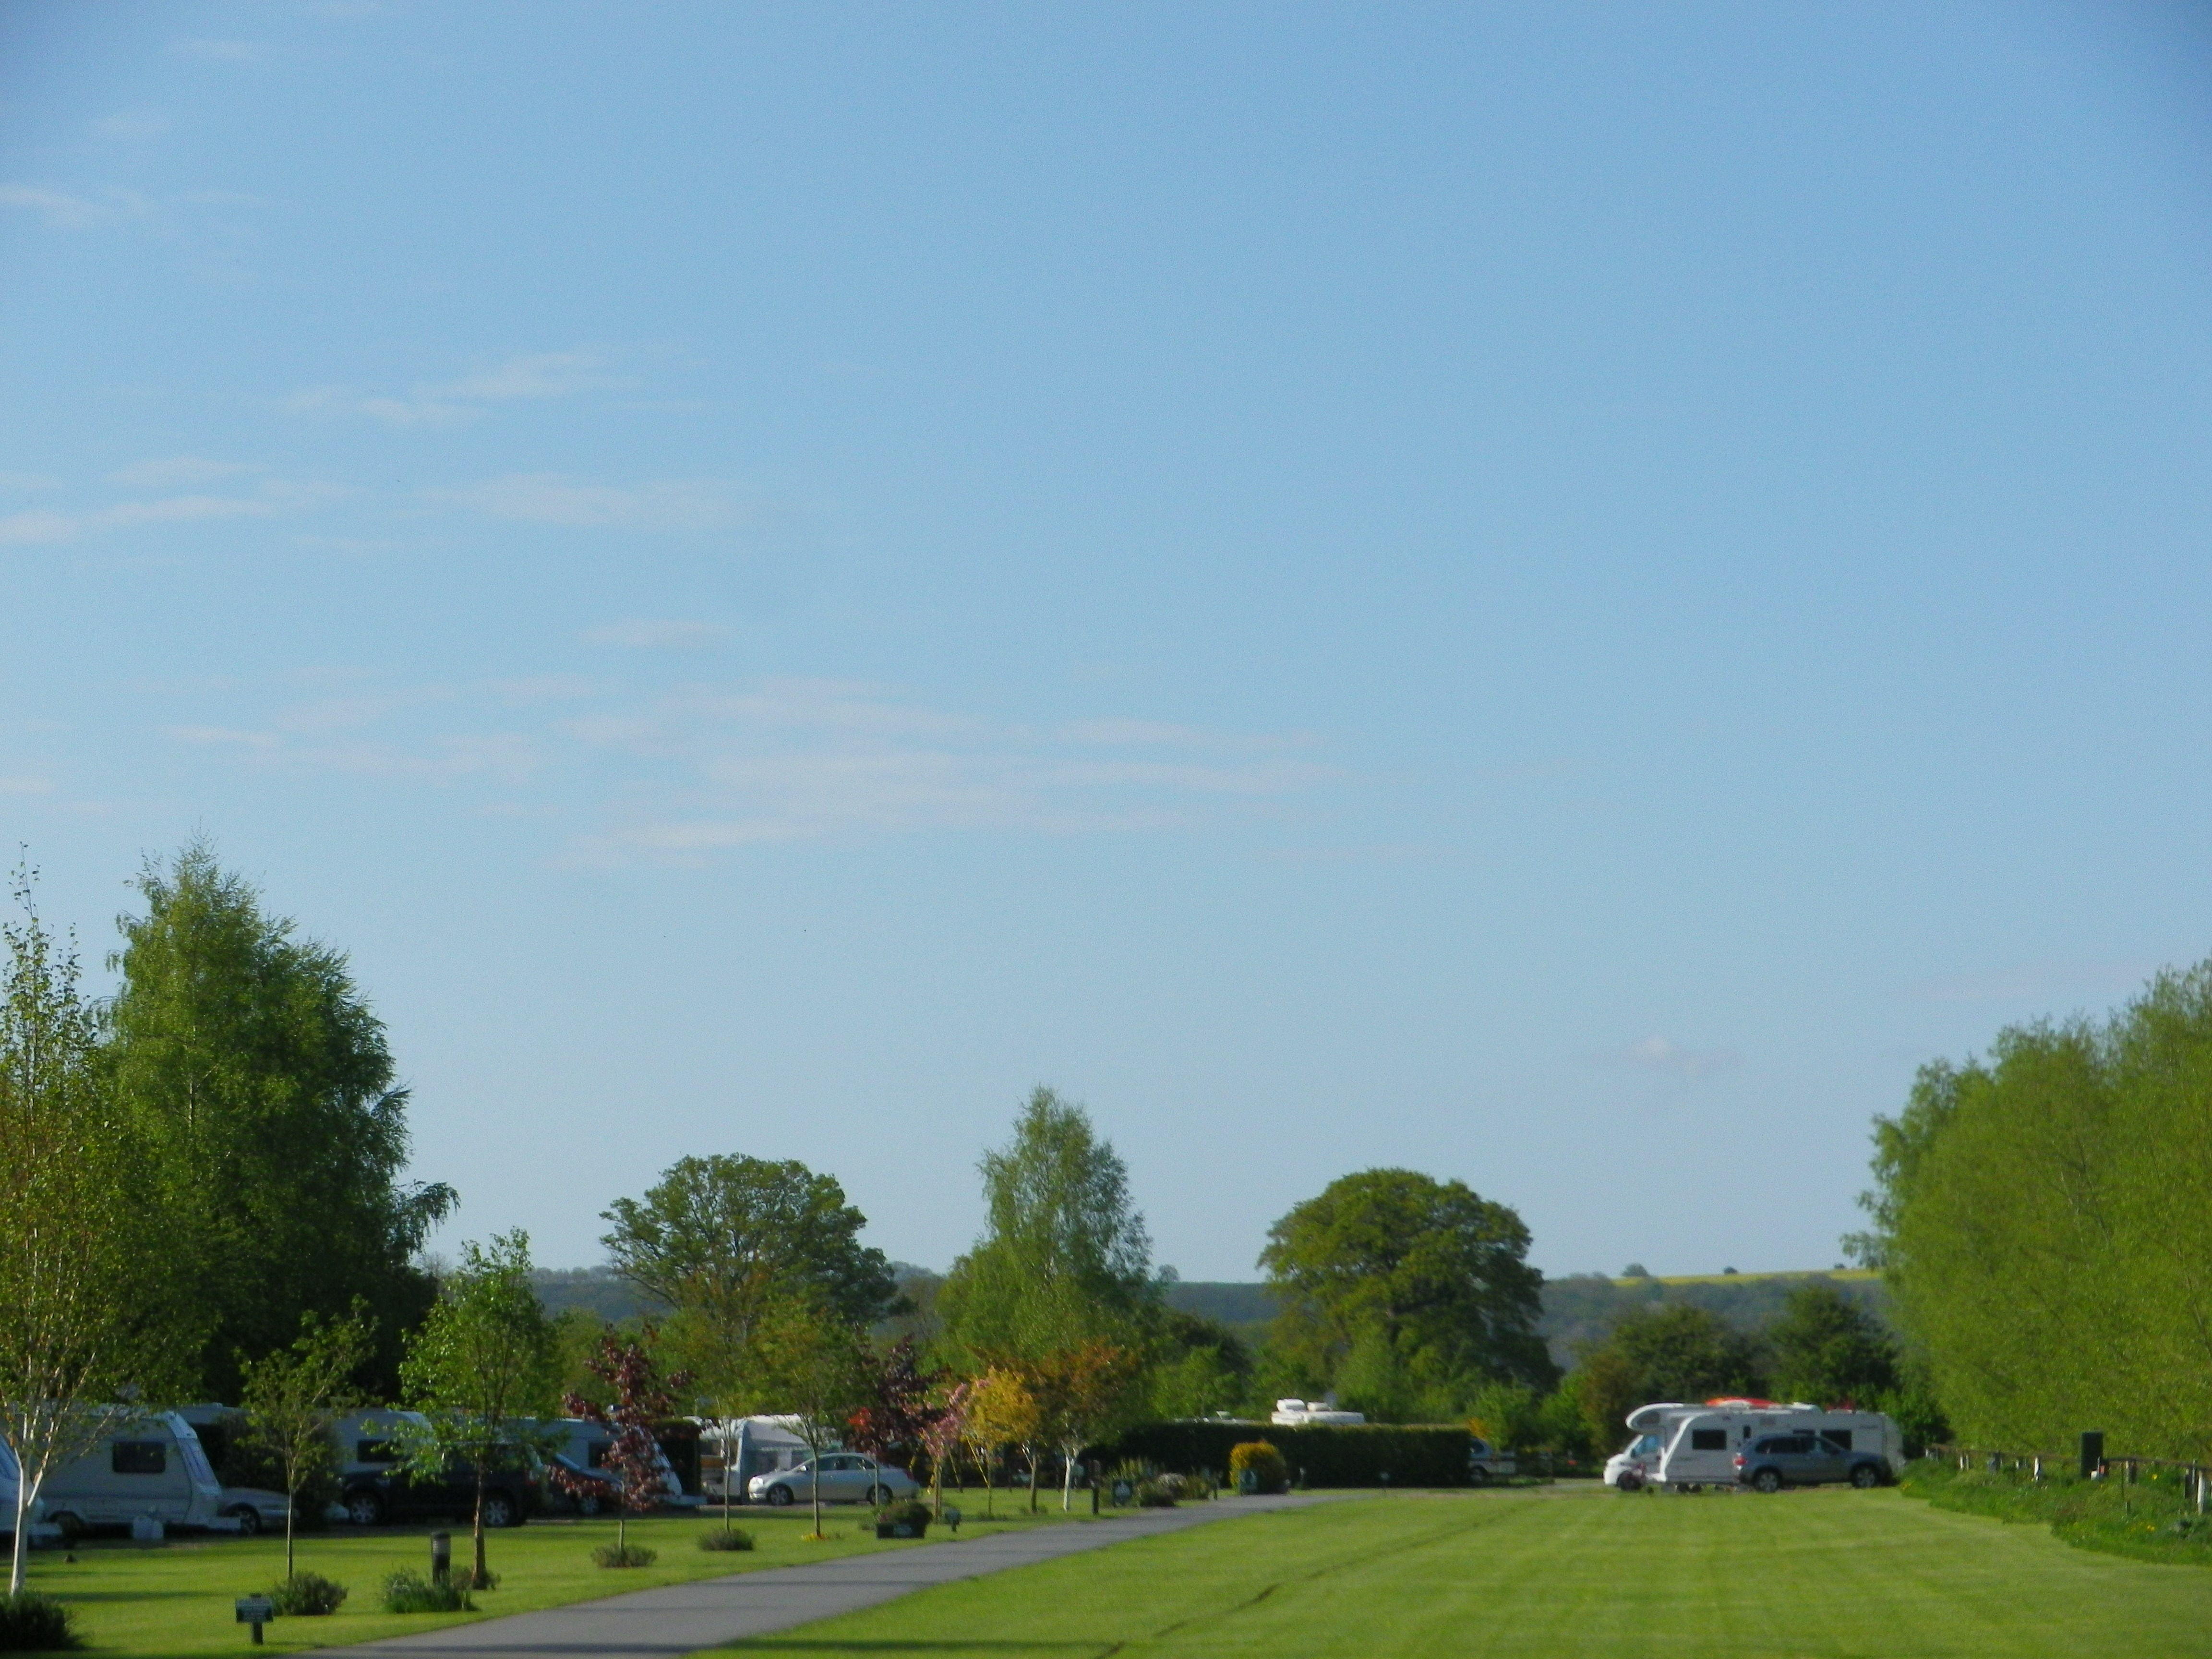 Seasonal Caravan Pitches at Lucksall Caravan & Camping Park.